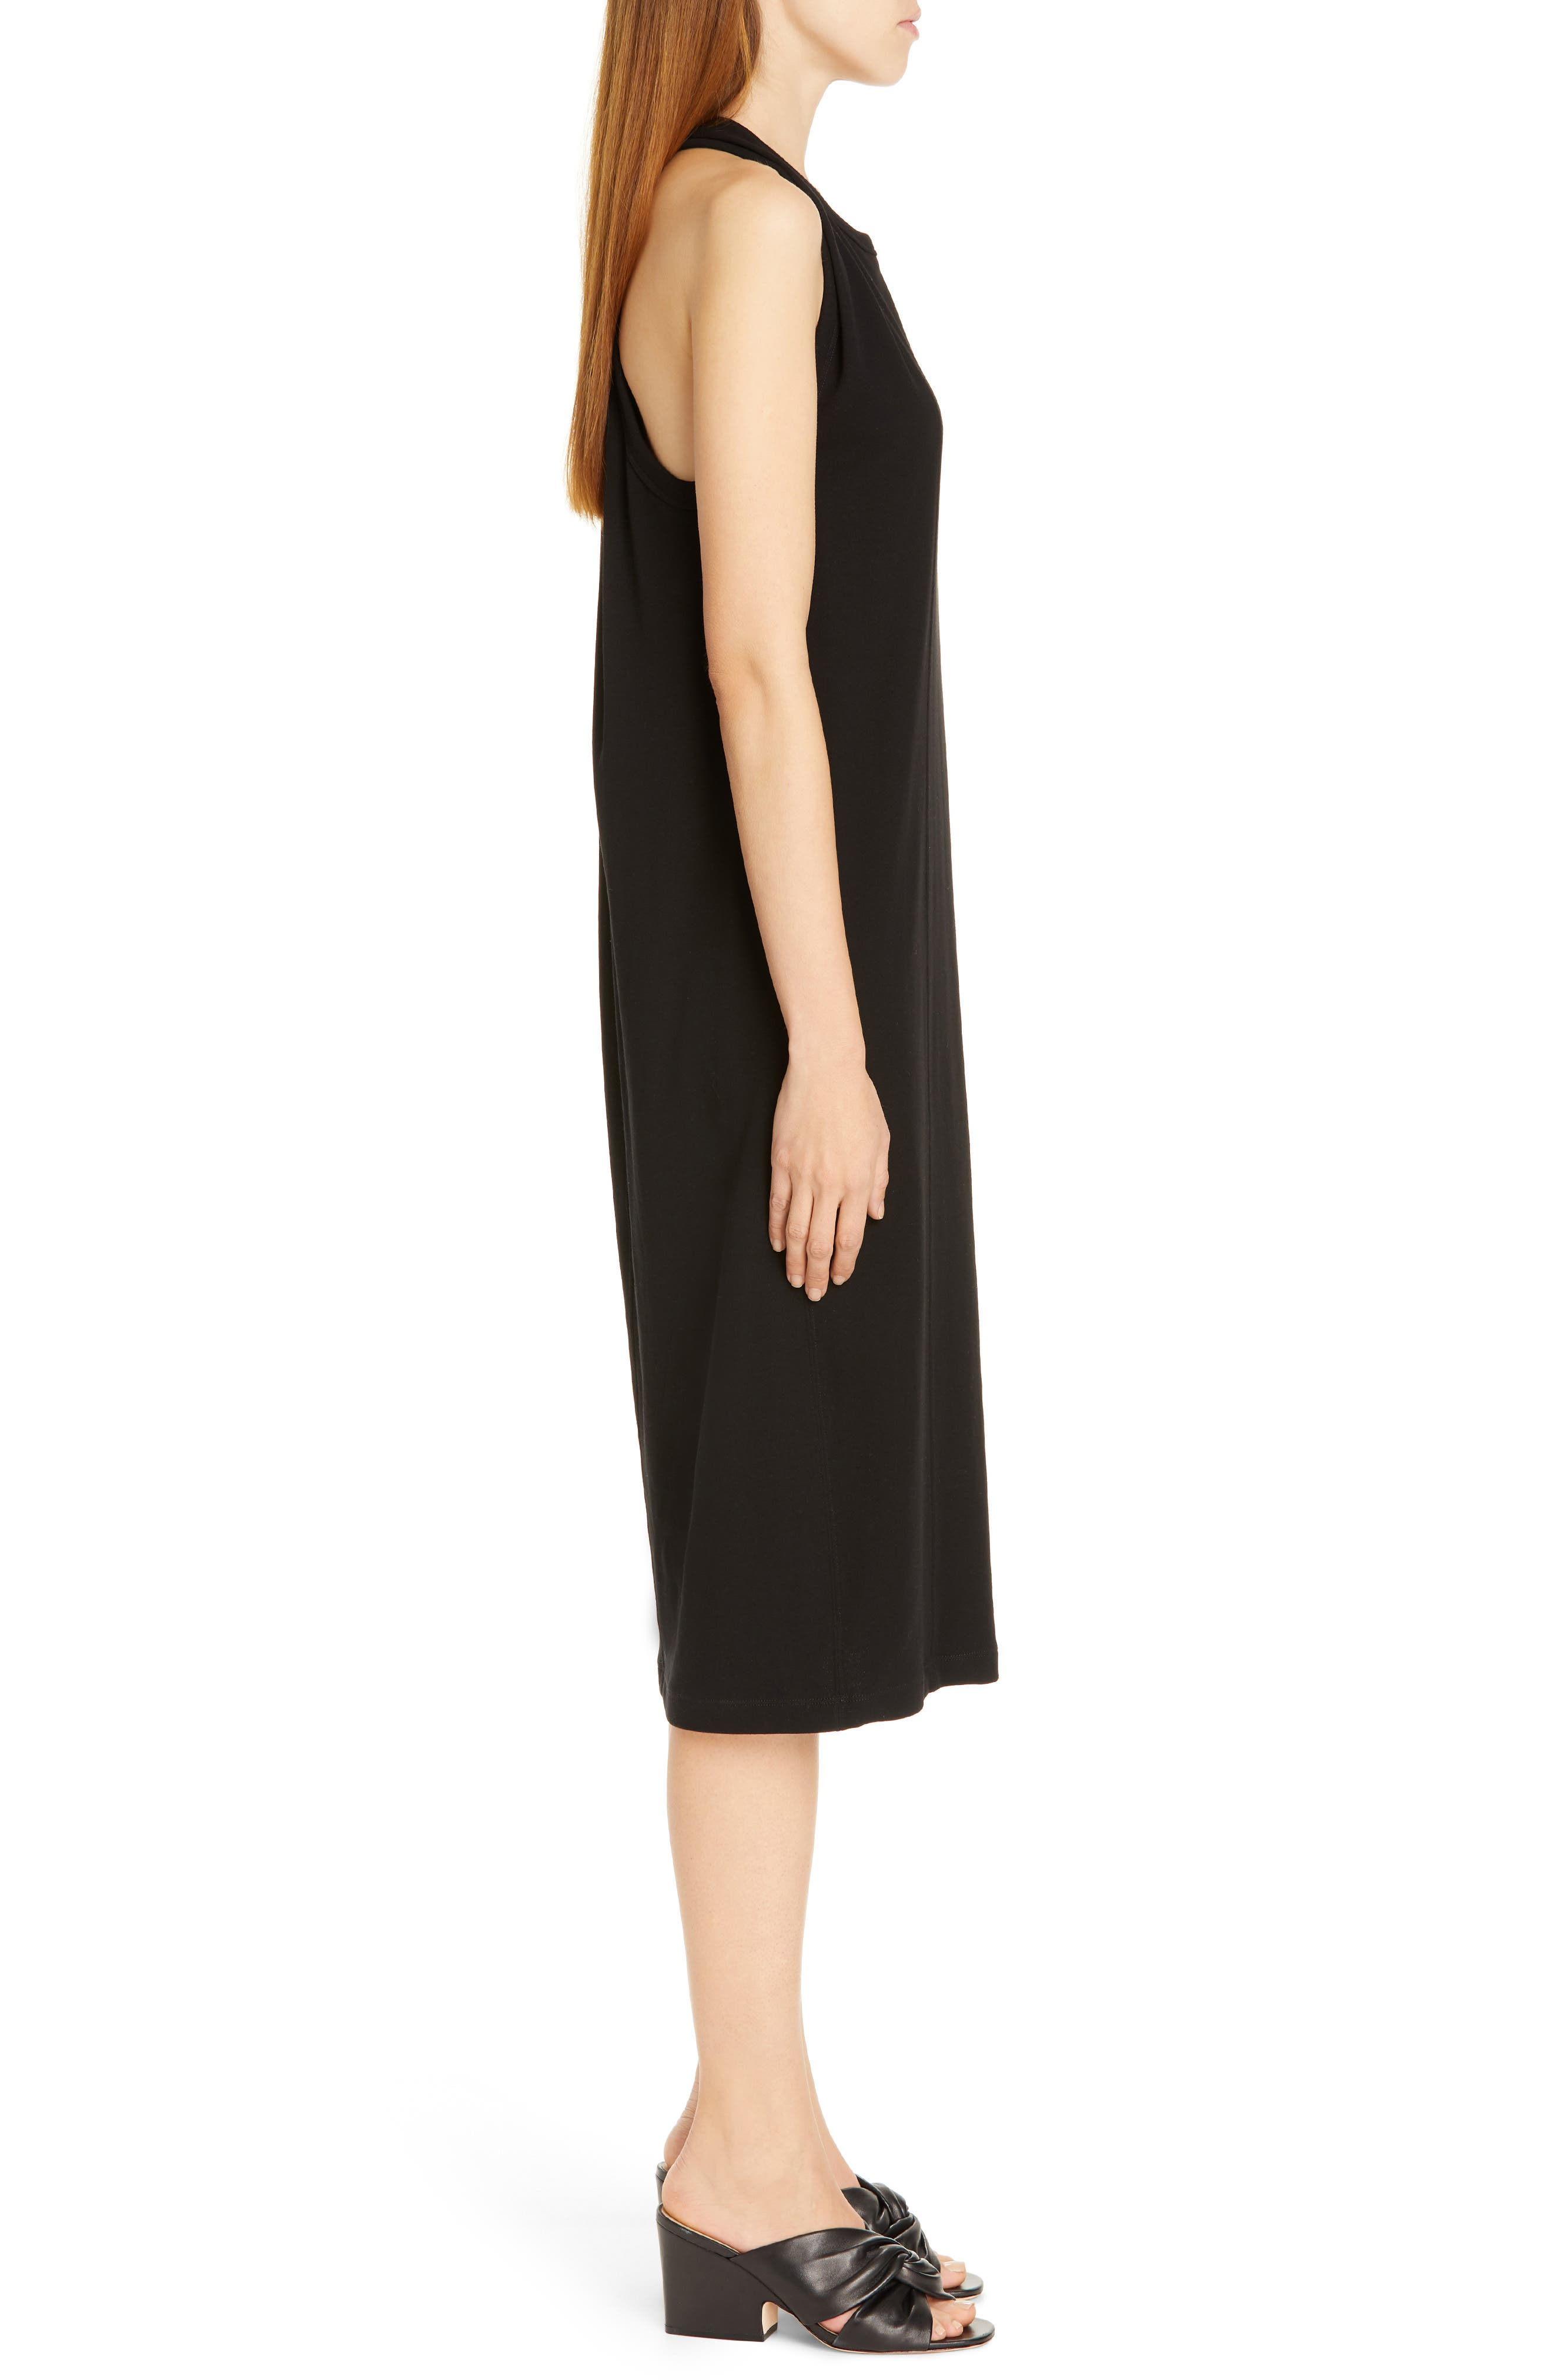 HELMUT LANG, Halter Neck Cotton Jersey Dress, Alternate thumbnail 4, color, BLACK